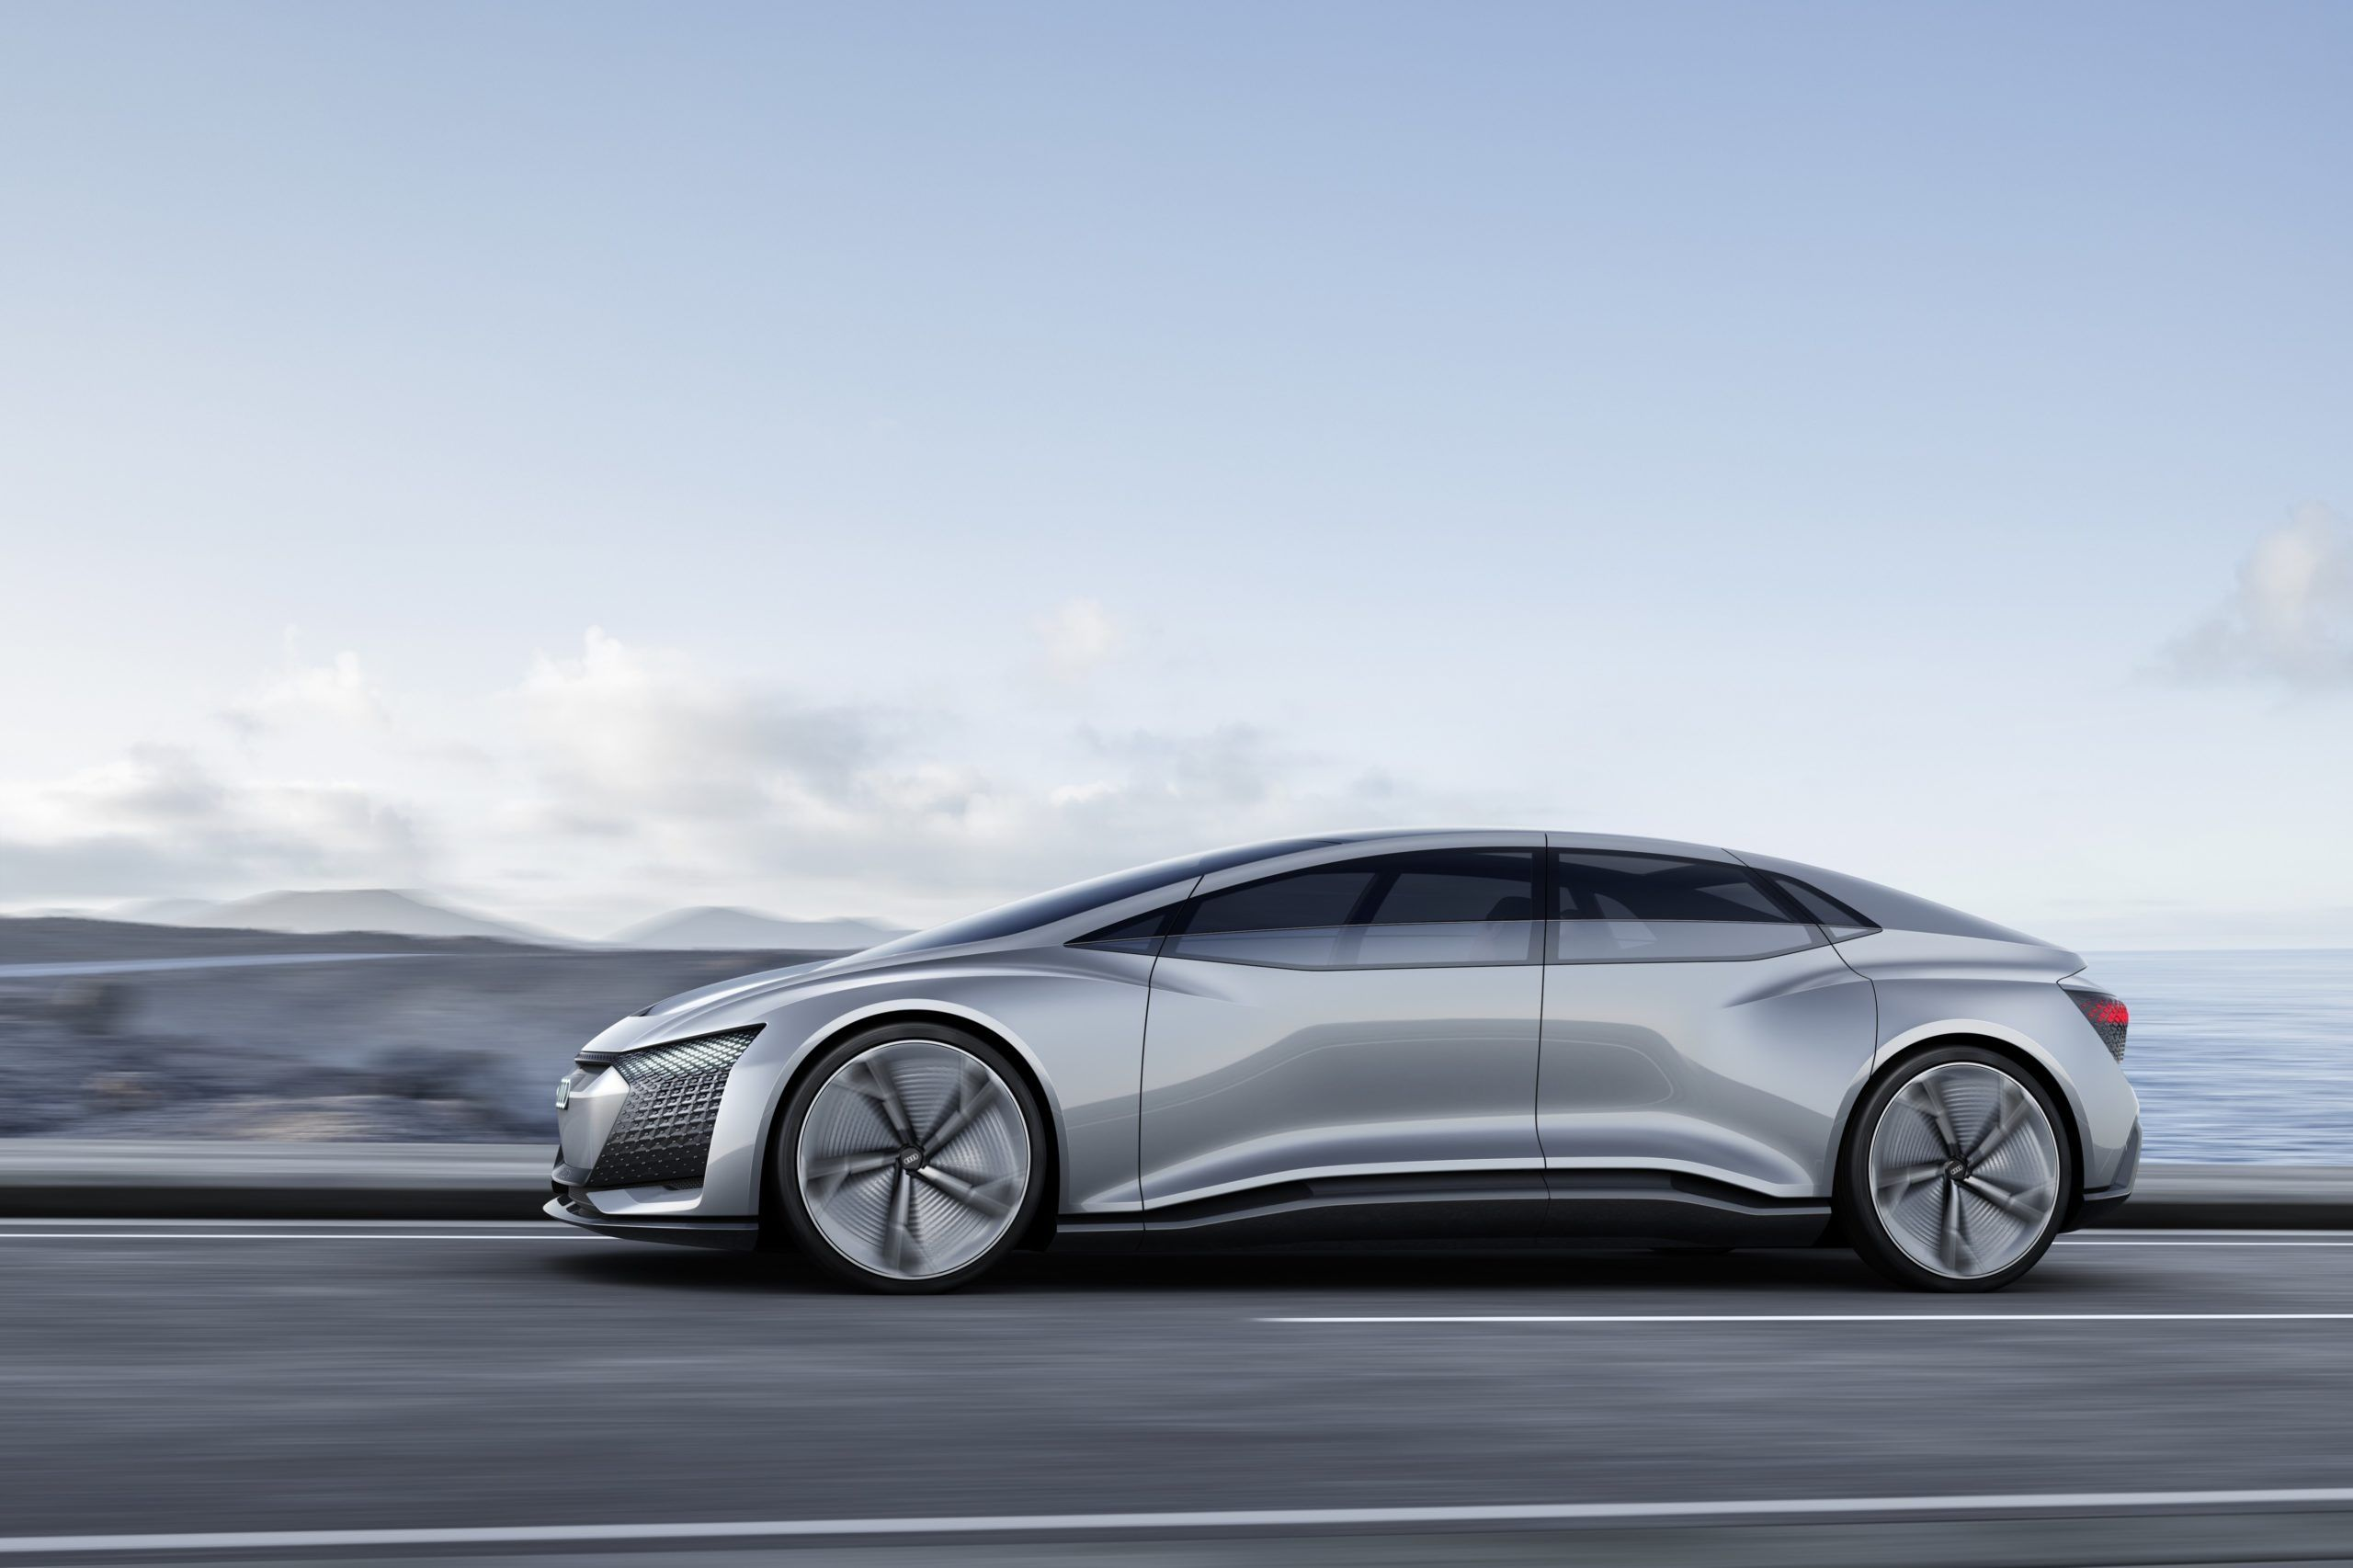 2021 Audi A9 Concept Specs and Review